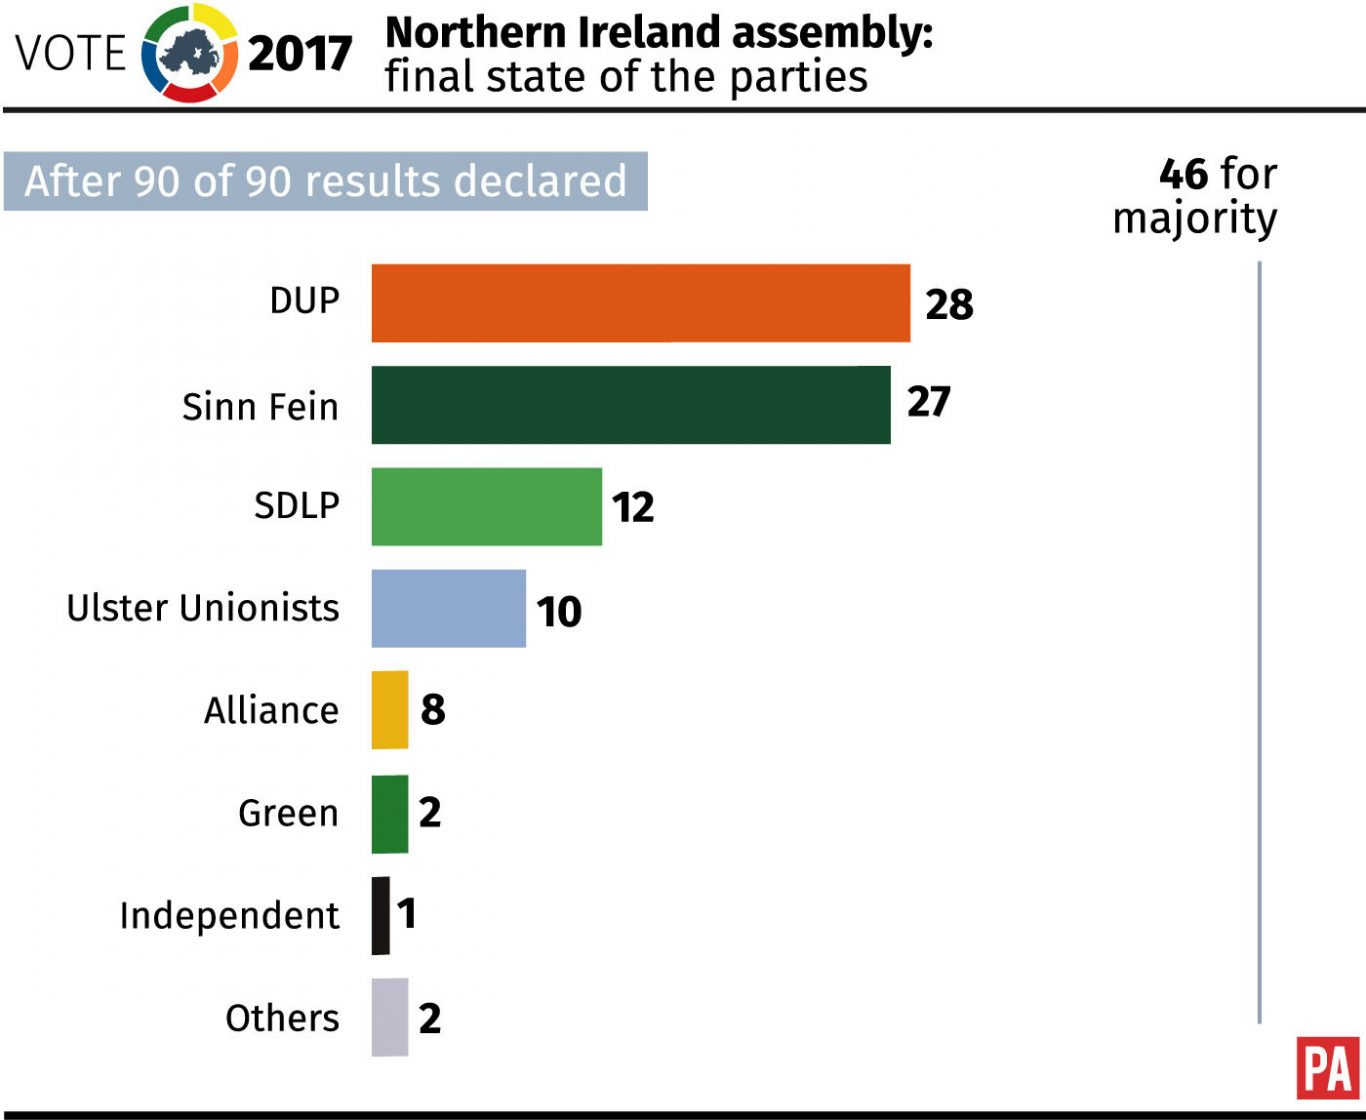 Northern Ireland assembly: final state of the parties